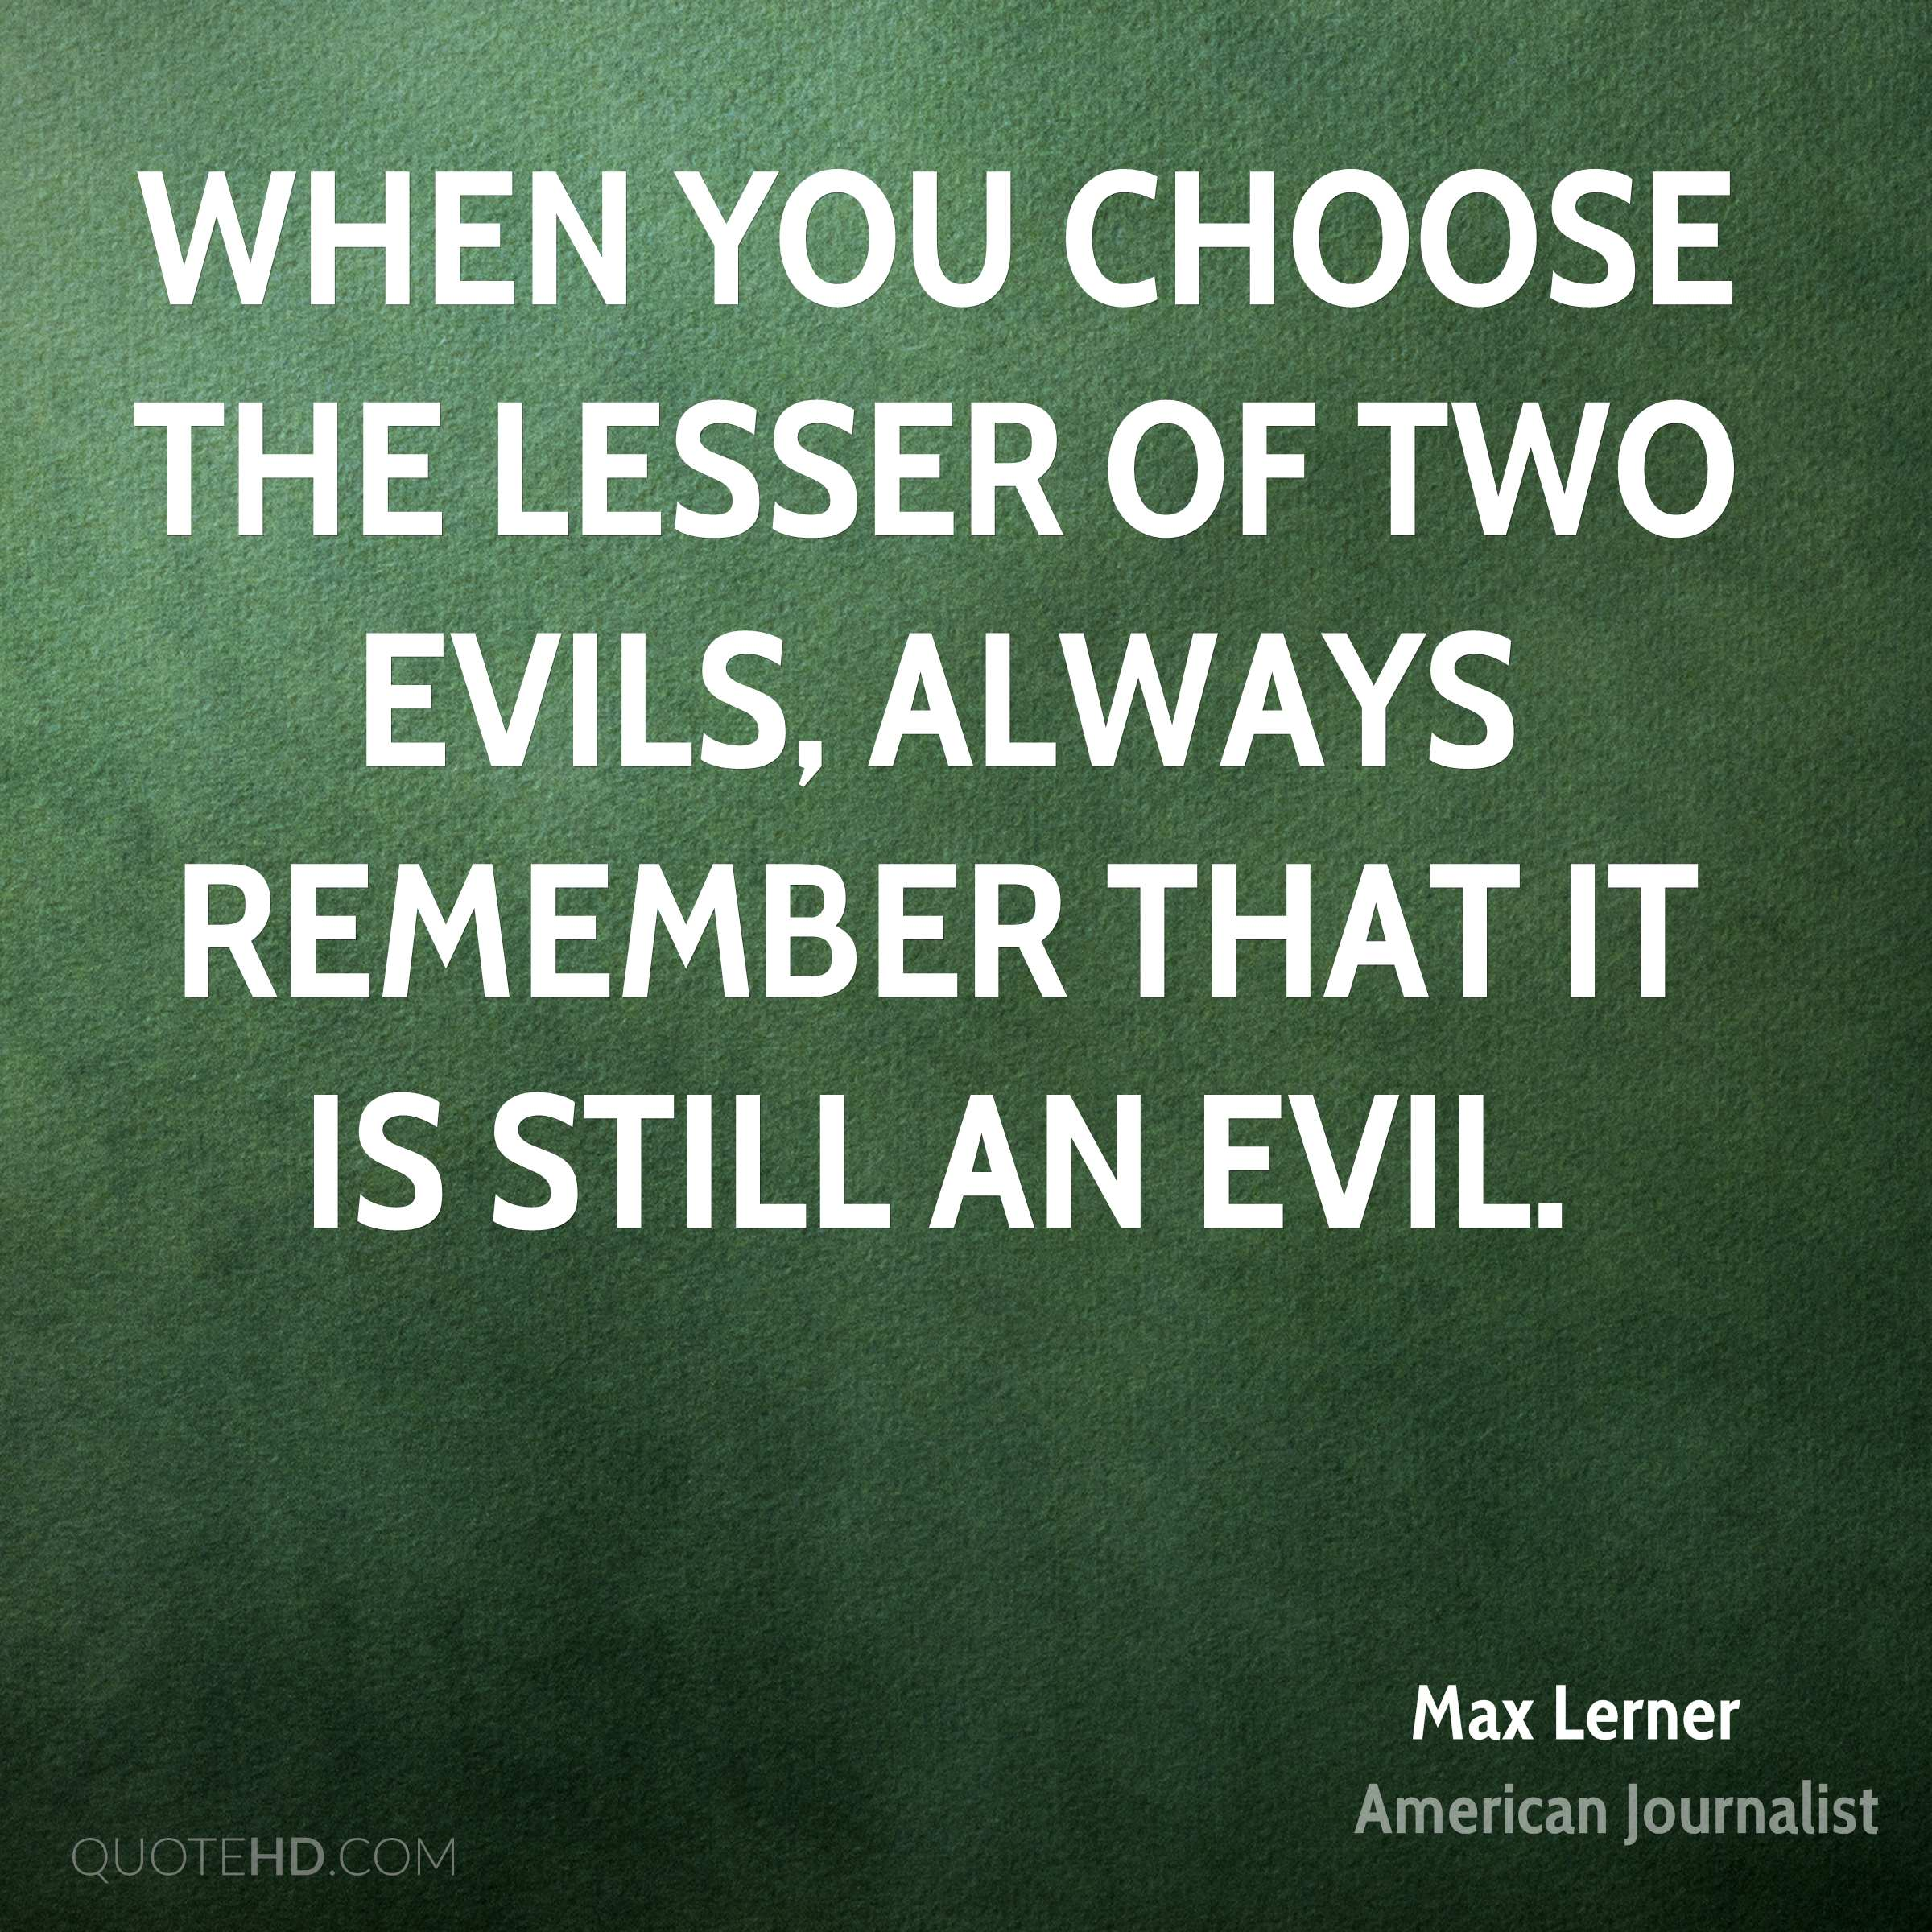 When you choose the lesser of two evils, always remember that it is still an evil.